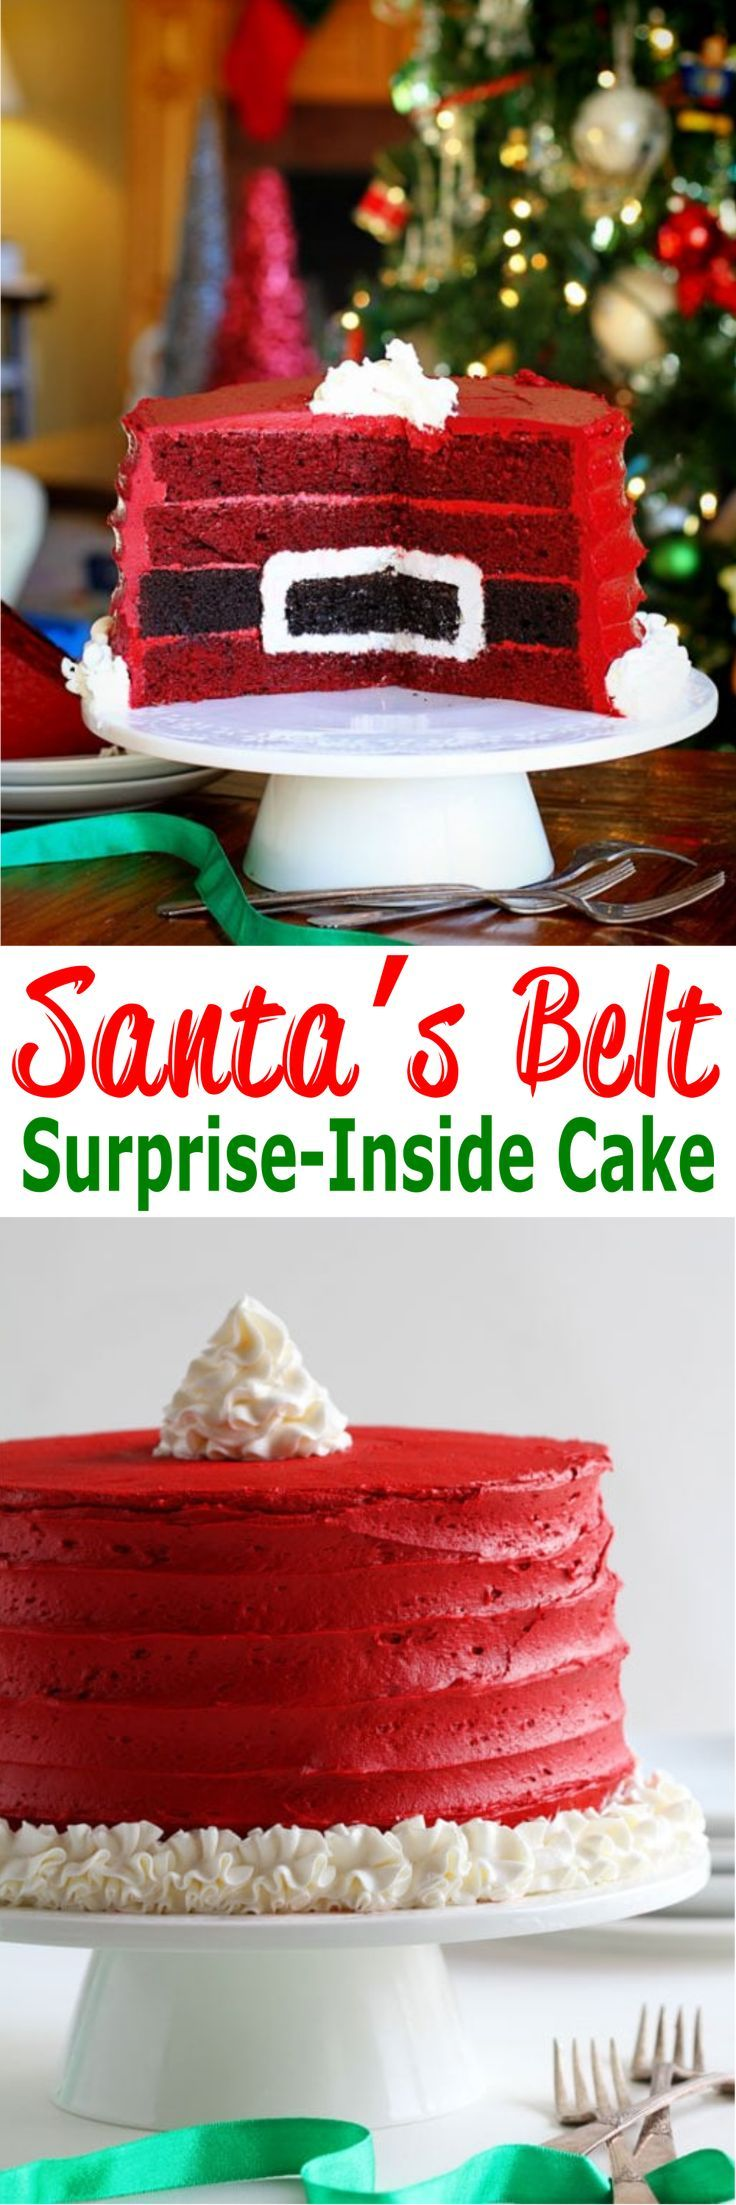 Santa's Belt Surprise-Inside®️ Cake | If you're looking for festive desserts recipes for Christmas, your family will love this Santa's Belt Cake with a surprise inside! You can either use a box mix or from scratch recipe for red velvet cake and chocolate cake! This homemade cake is amazing, a sweet treat for the holiday and so damn delicious! For more simple and easy dessert recipes to make, check us out at #iambaker. #cakes #desserts #yummydesserts #recipeoftheday